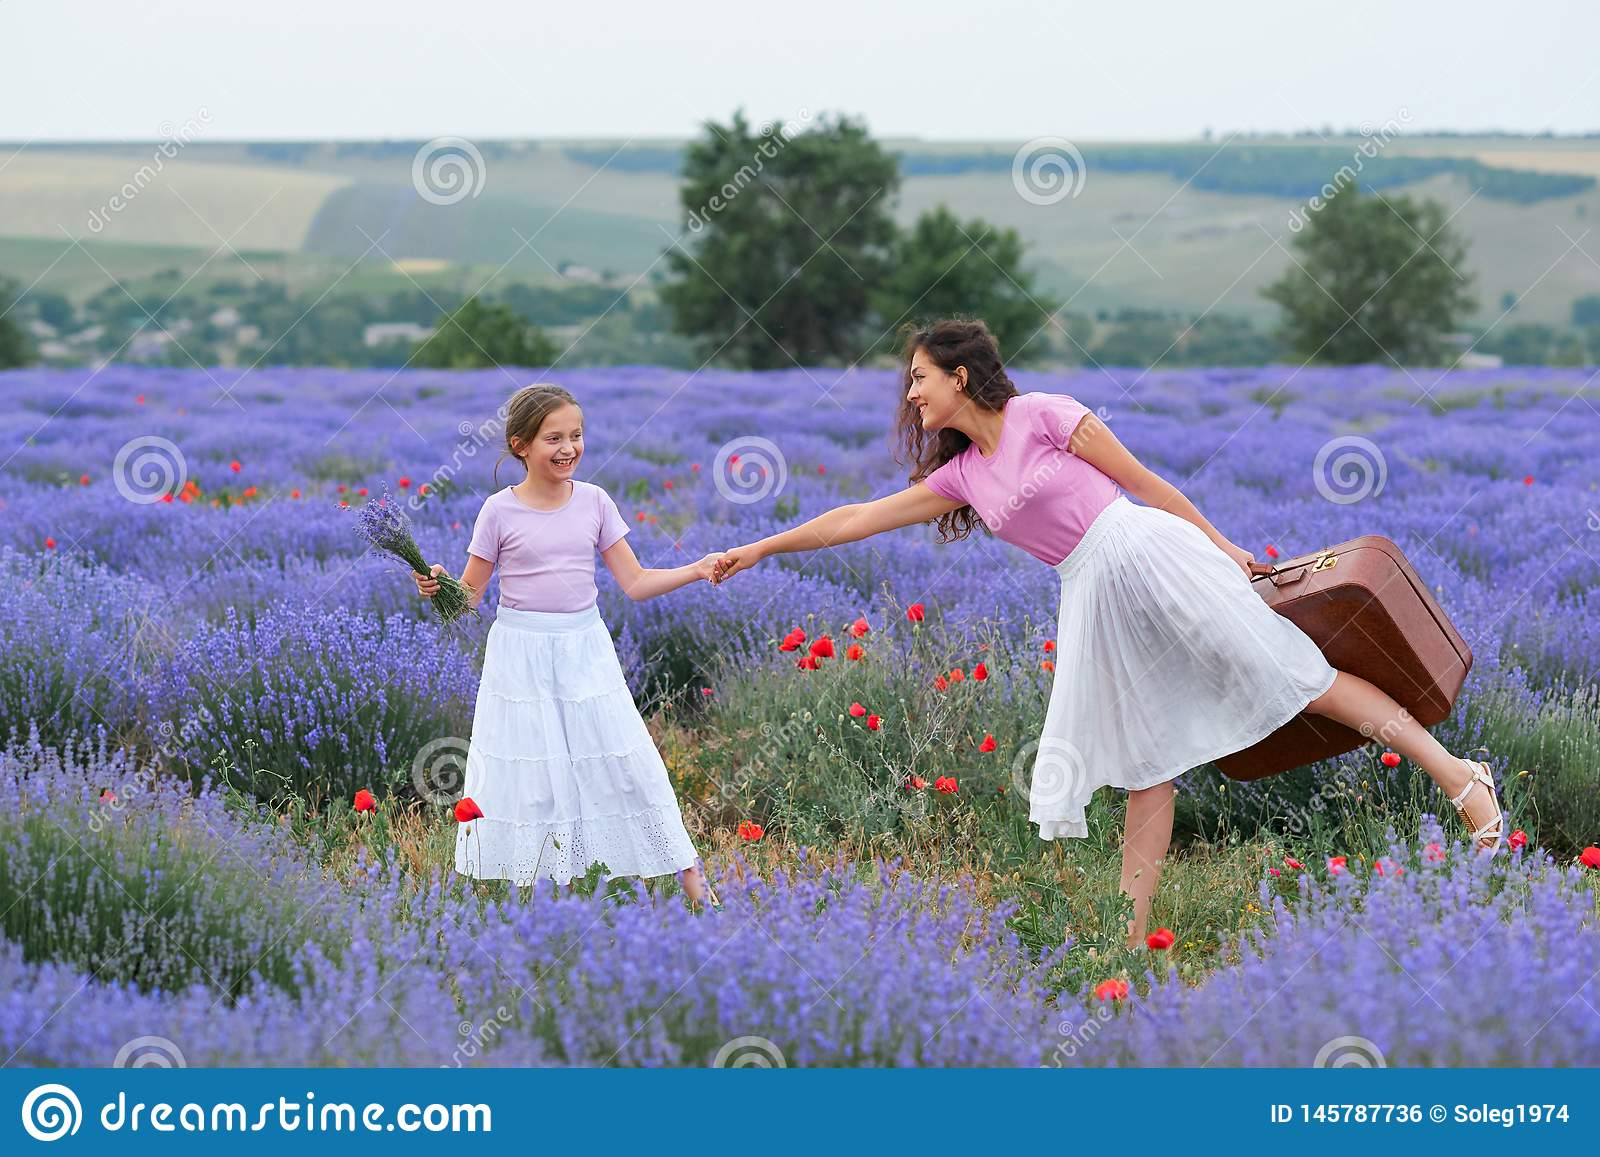 Young woman and girl are walking through the lavender flower field, beautiful summer landscape